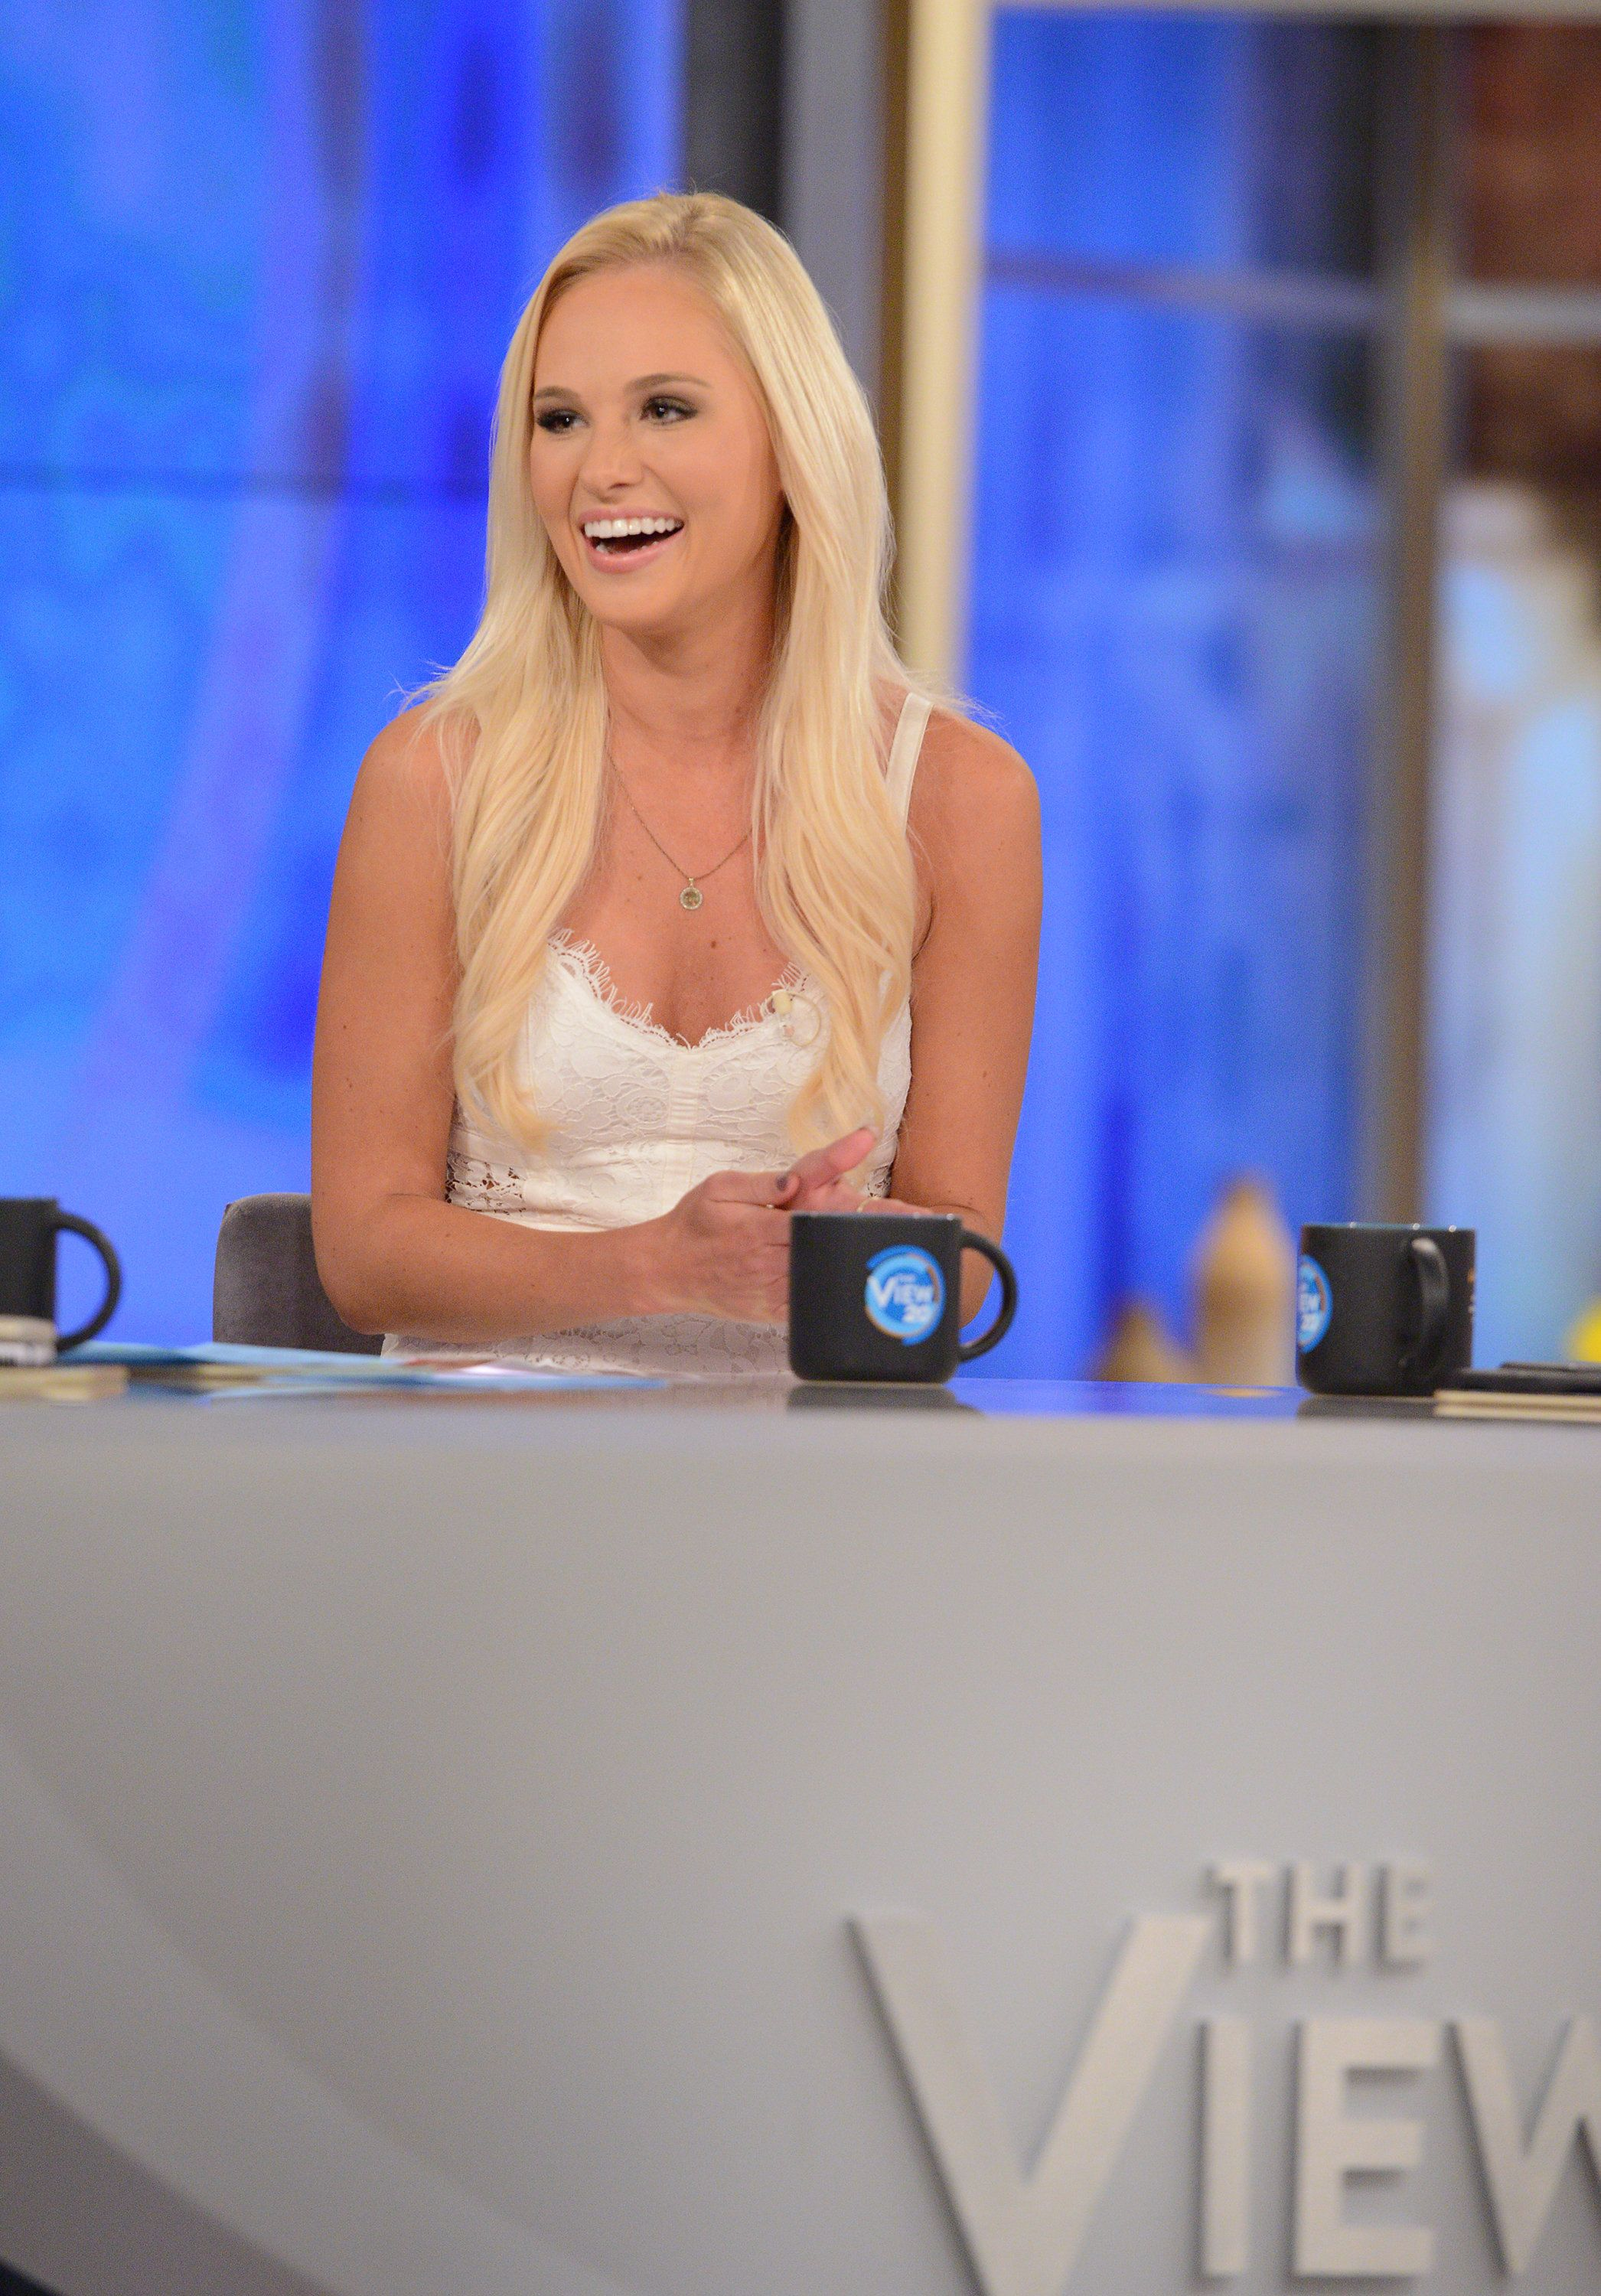 THE VIEW - Today's guest include actor Jussie Smollett and Conservative Commentator Tomi Lahren on ABC's 'The View.'   'The View' airs Monday-Friday (11:00 am-12:00 pm, ET) on the ABC Television Network.     (Photo by Lorenzo Bevilaqua/ABC via Getty Images)  TOMI LAHREN